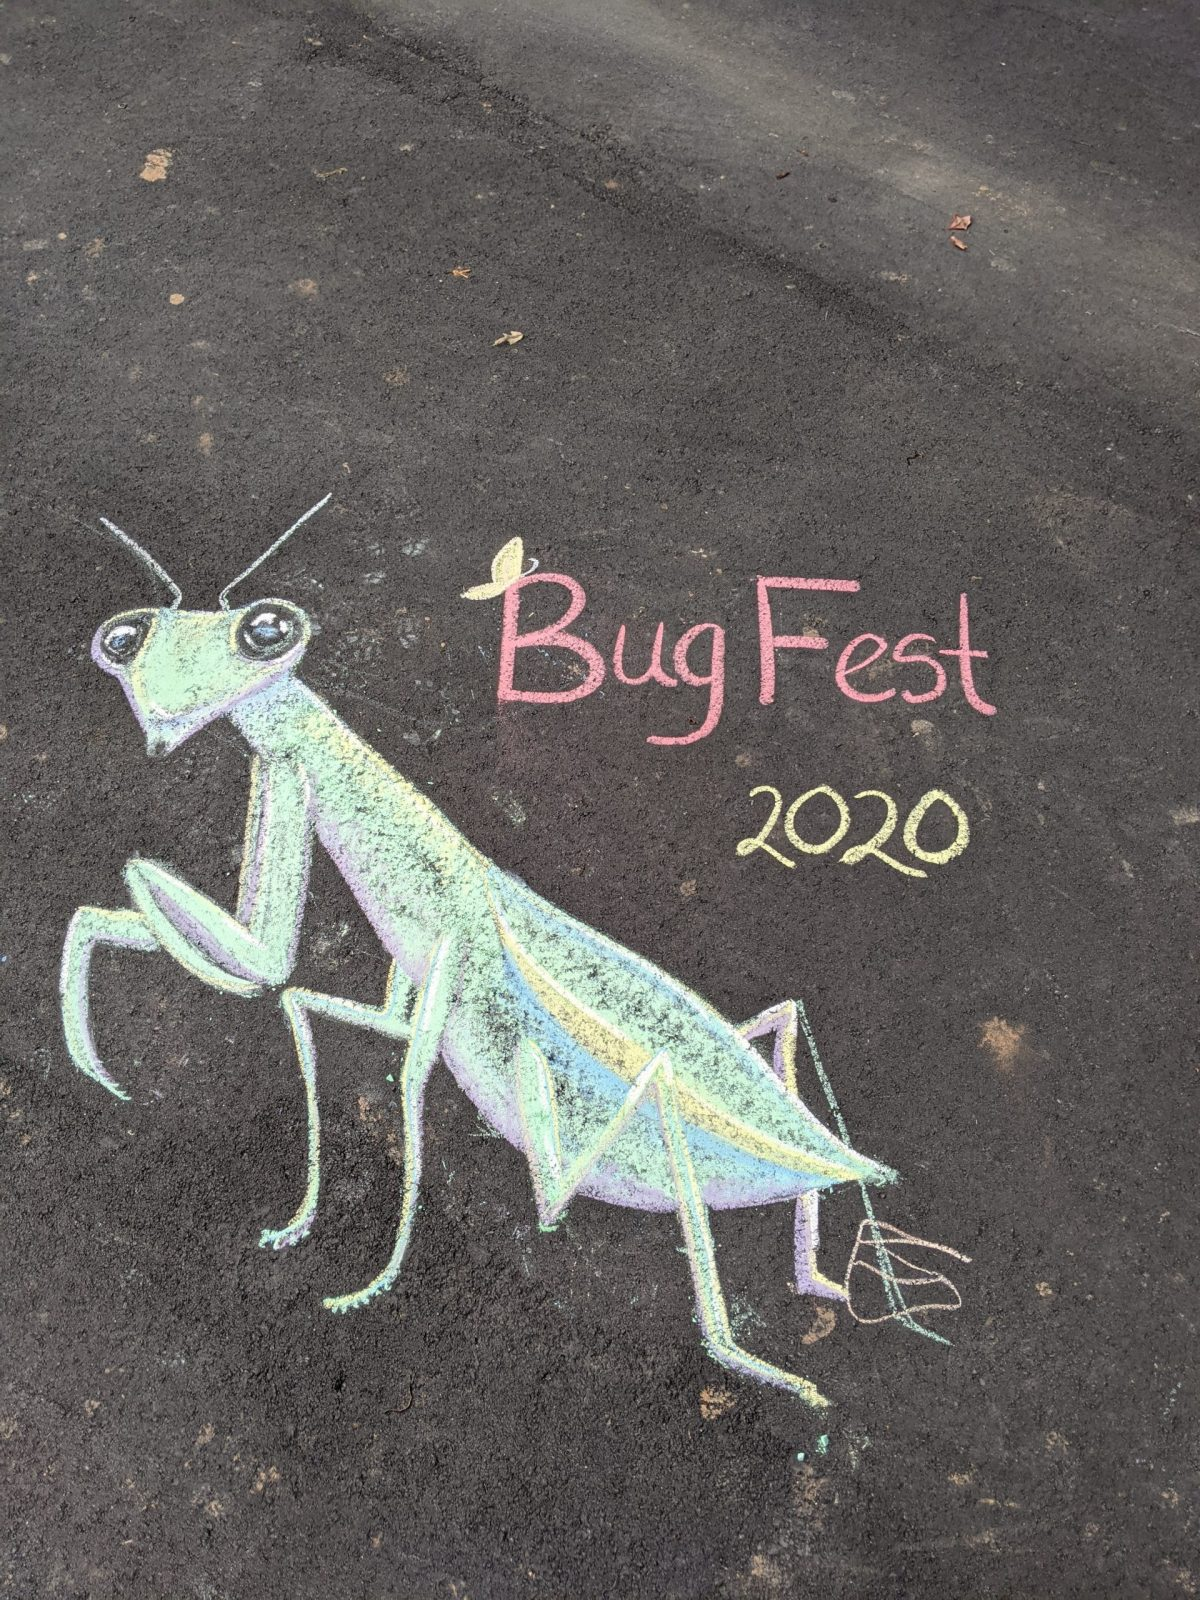 an excellent chalk praying mantis and bugfest 2020